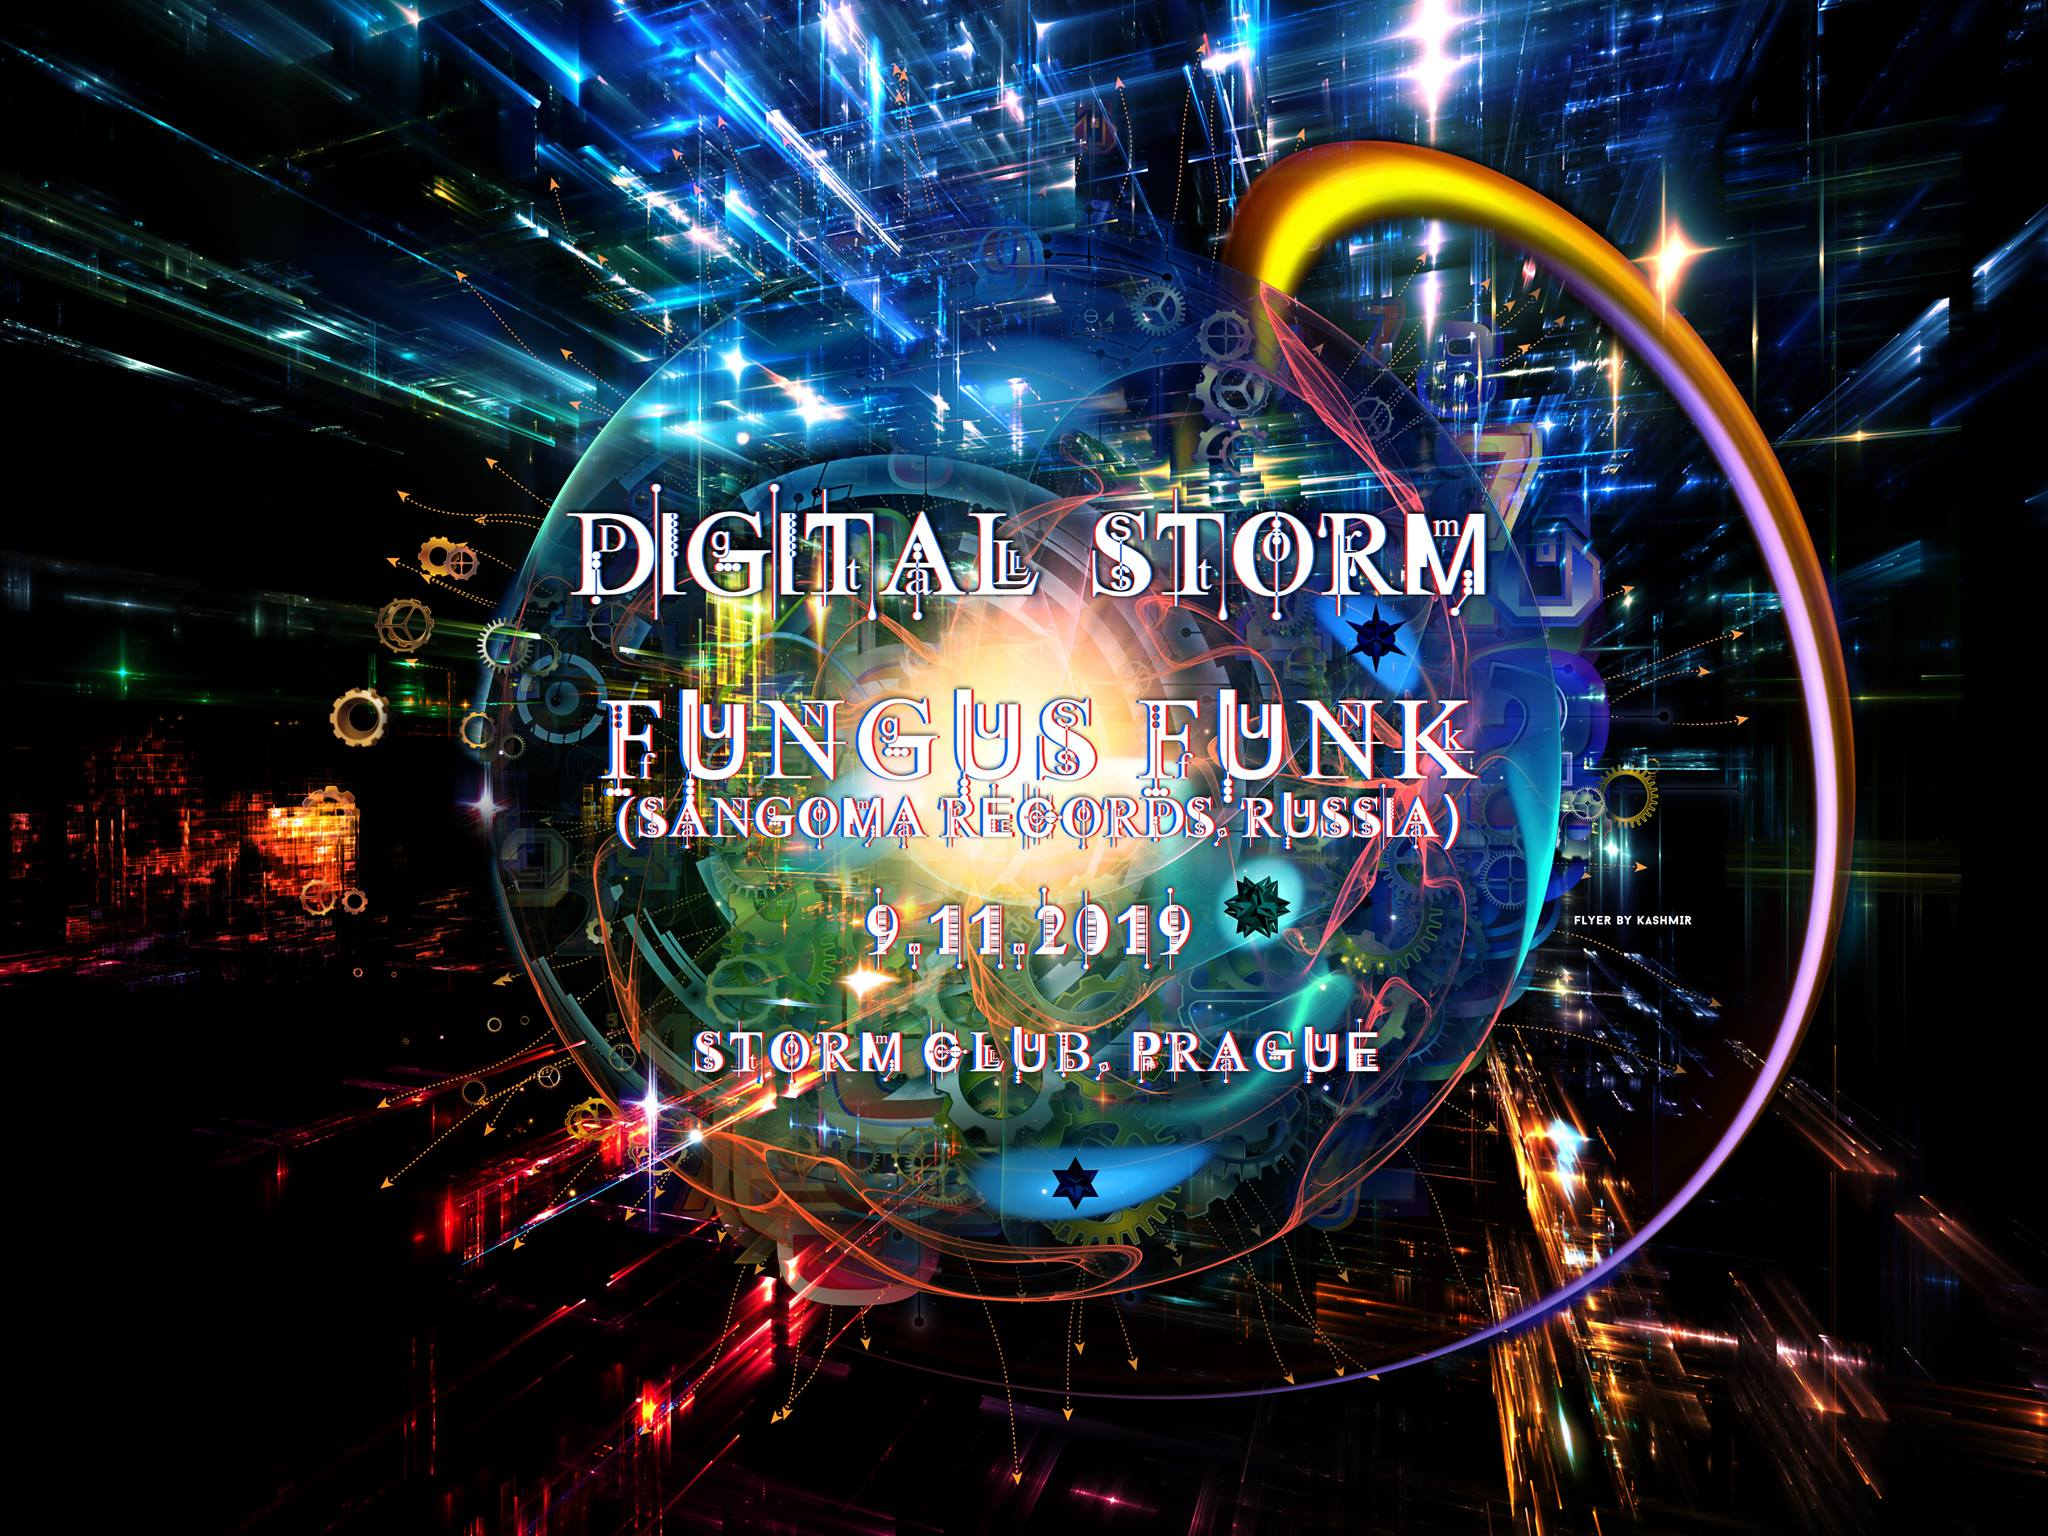 Digital Storm with Fungus Funk flyer